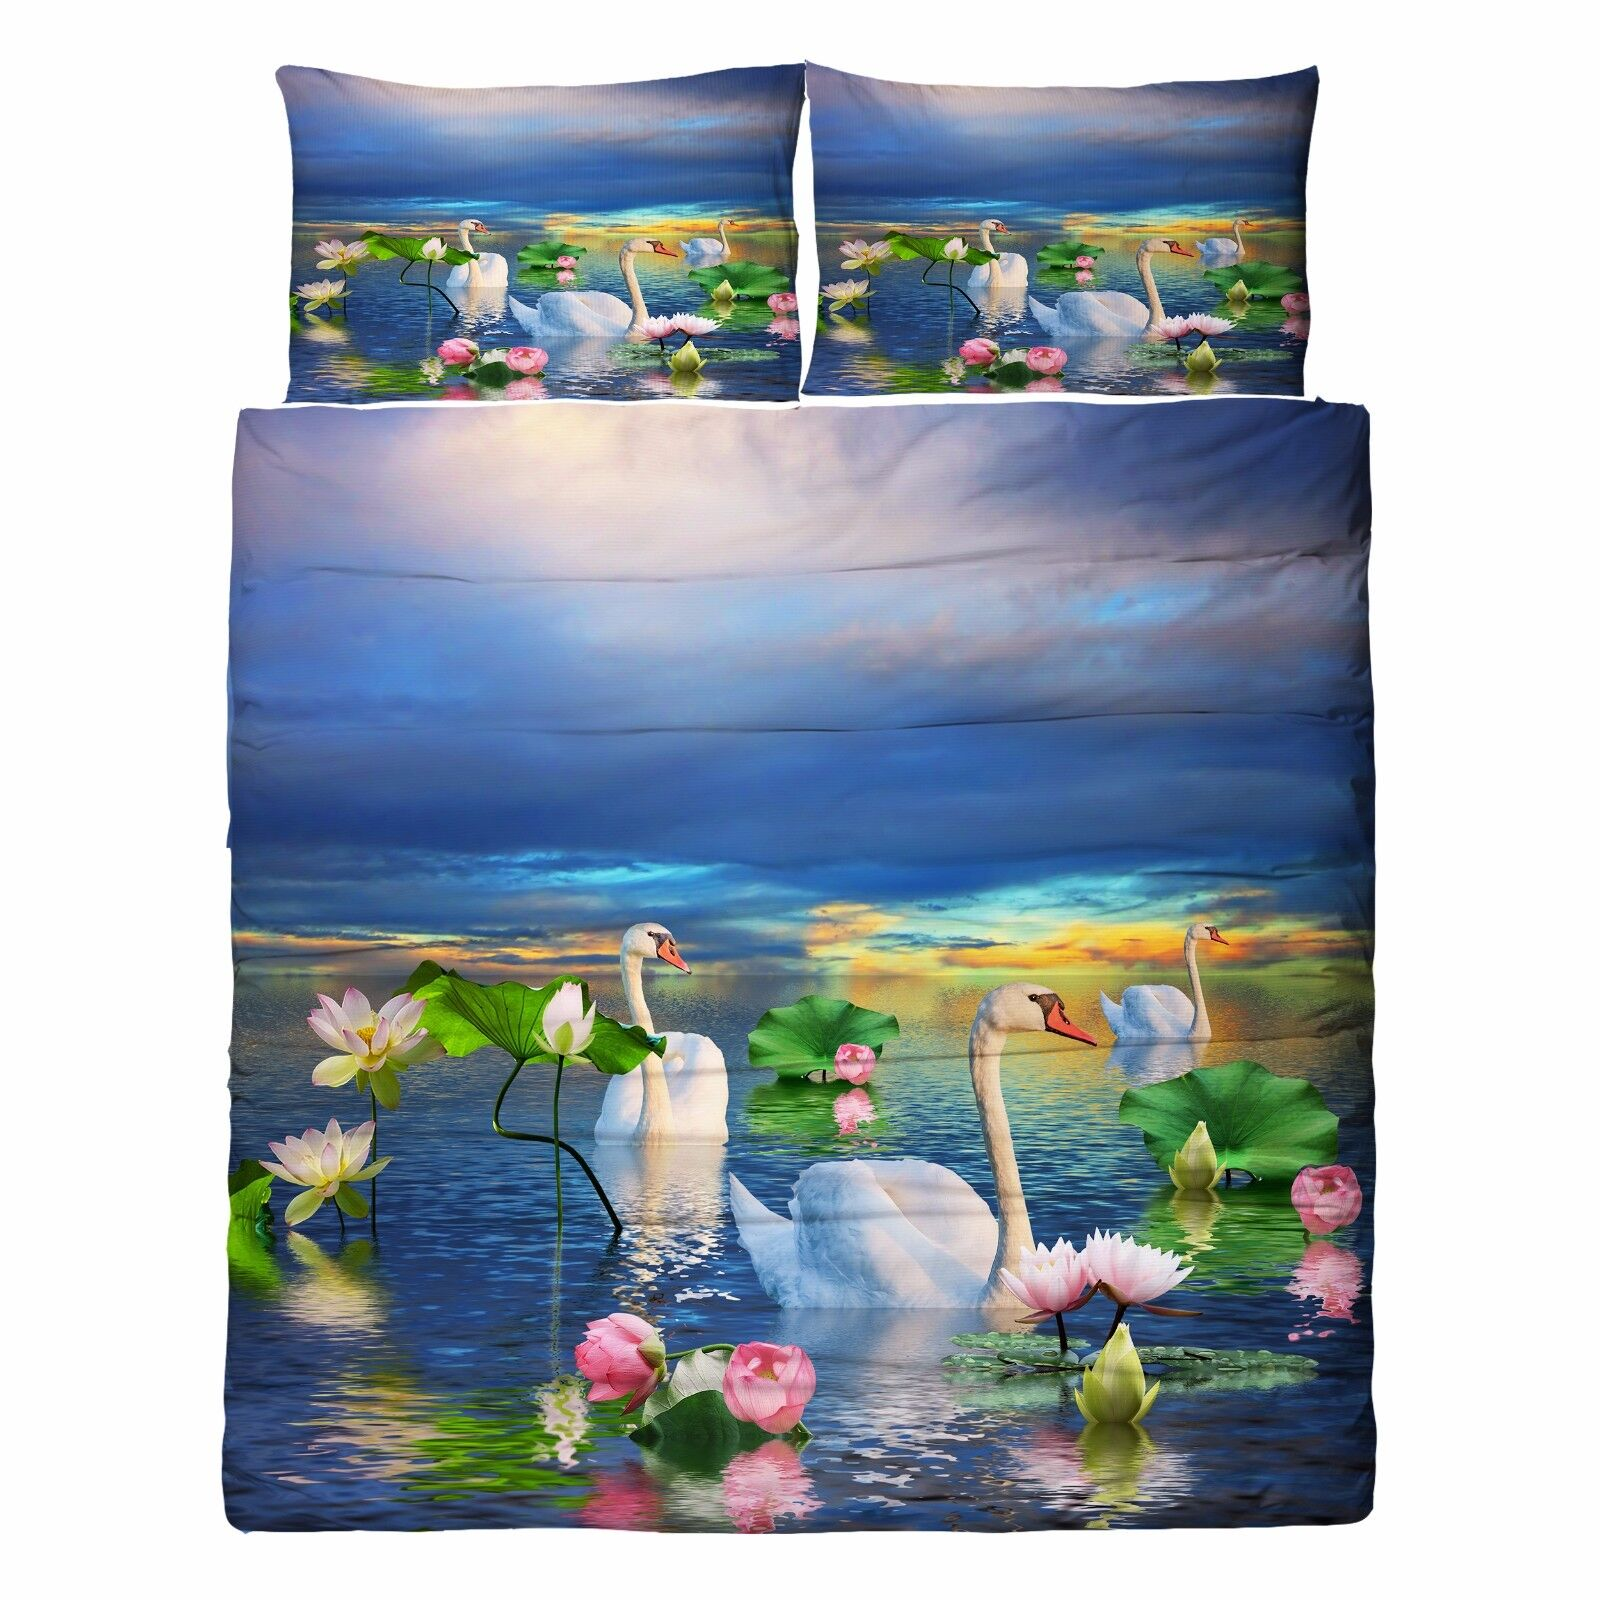 3D Lotus Sawn Lake 86 Bed Pillowcases Quilt Duvet Cover Set Single Queen UK Kyra